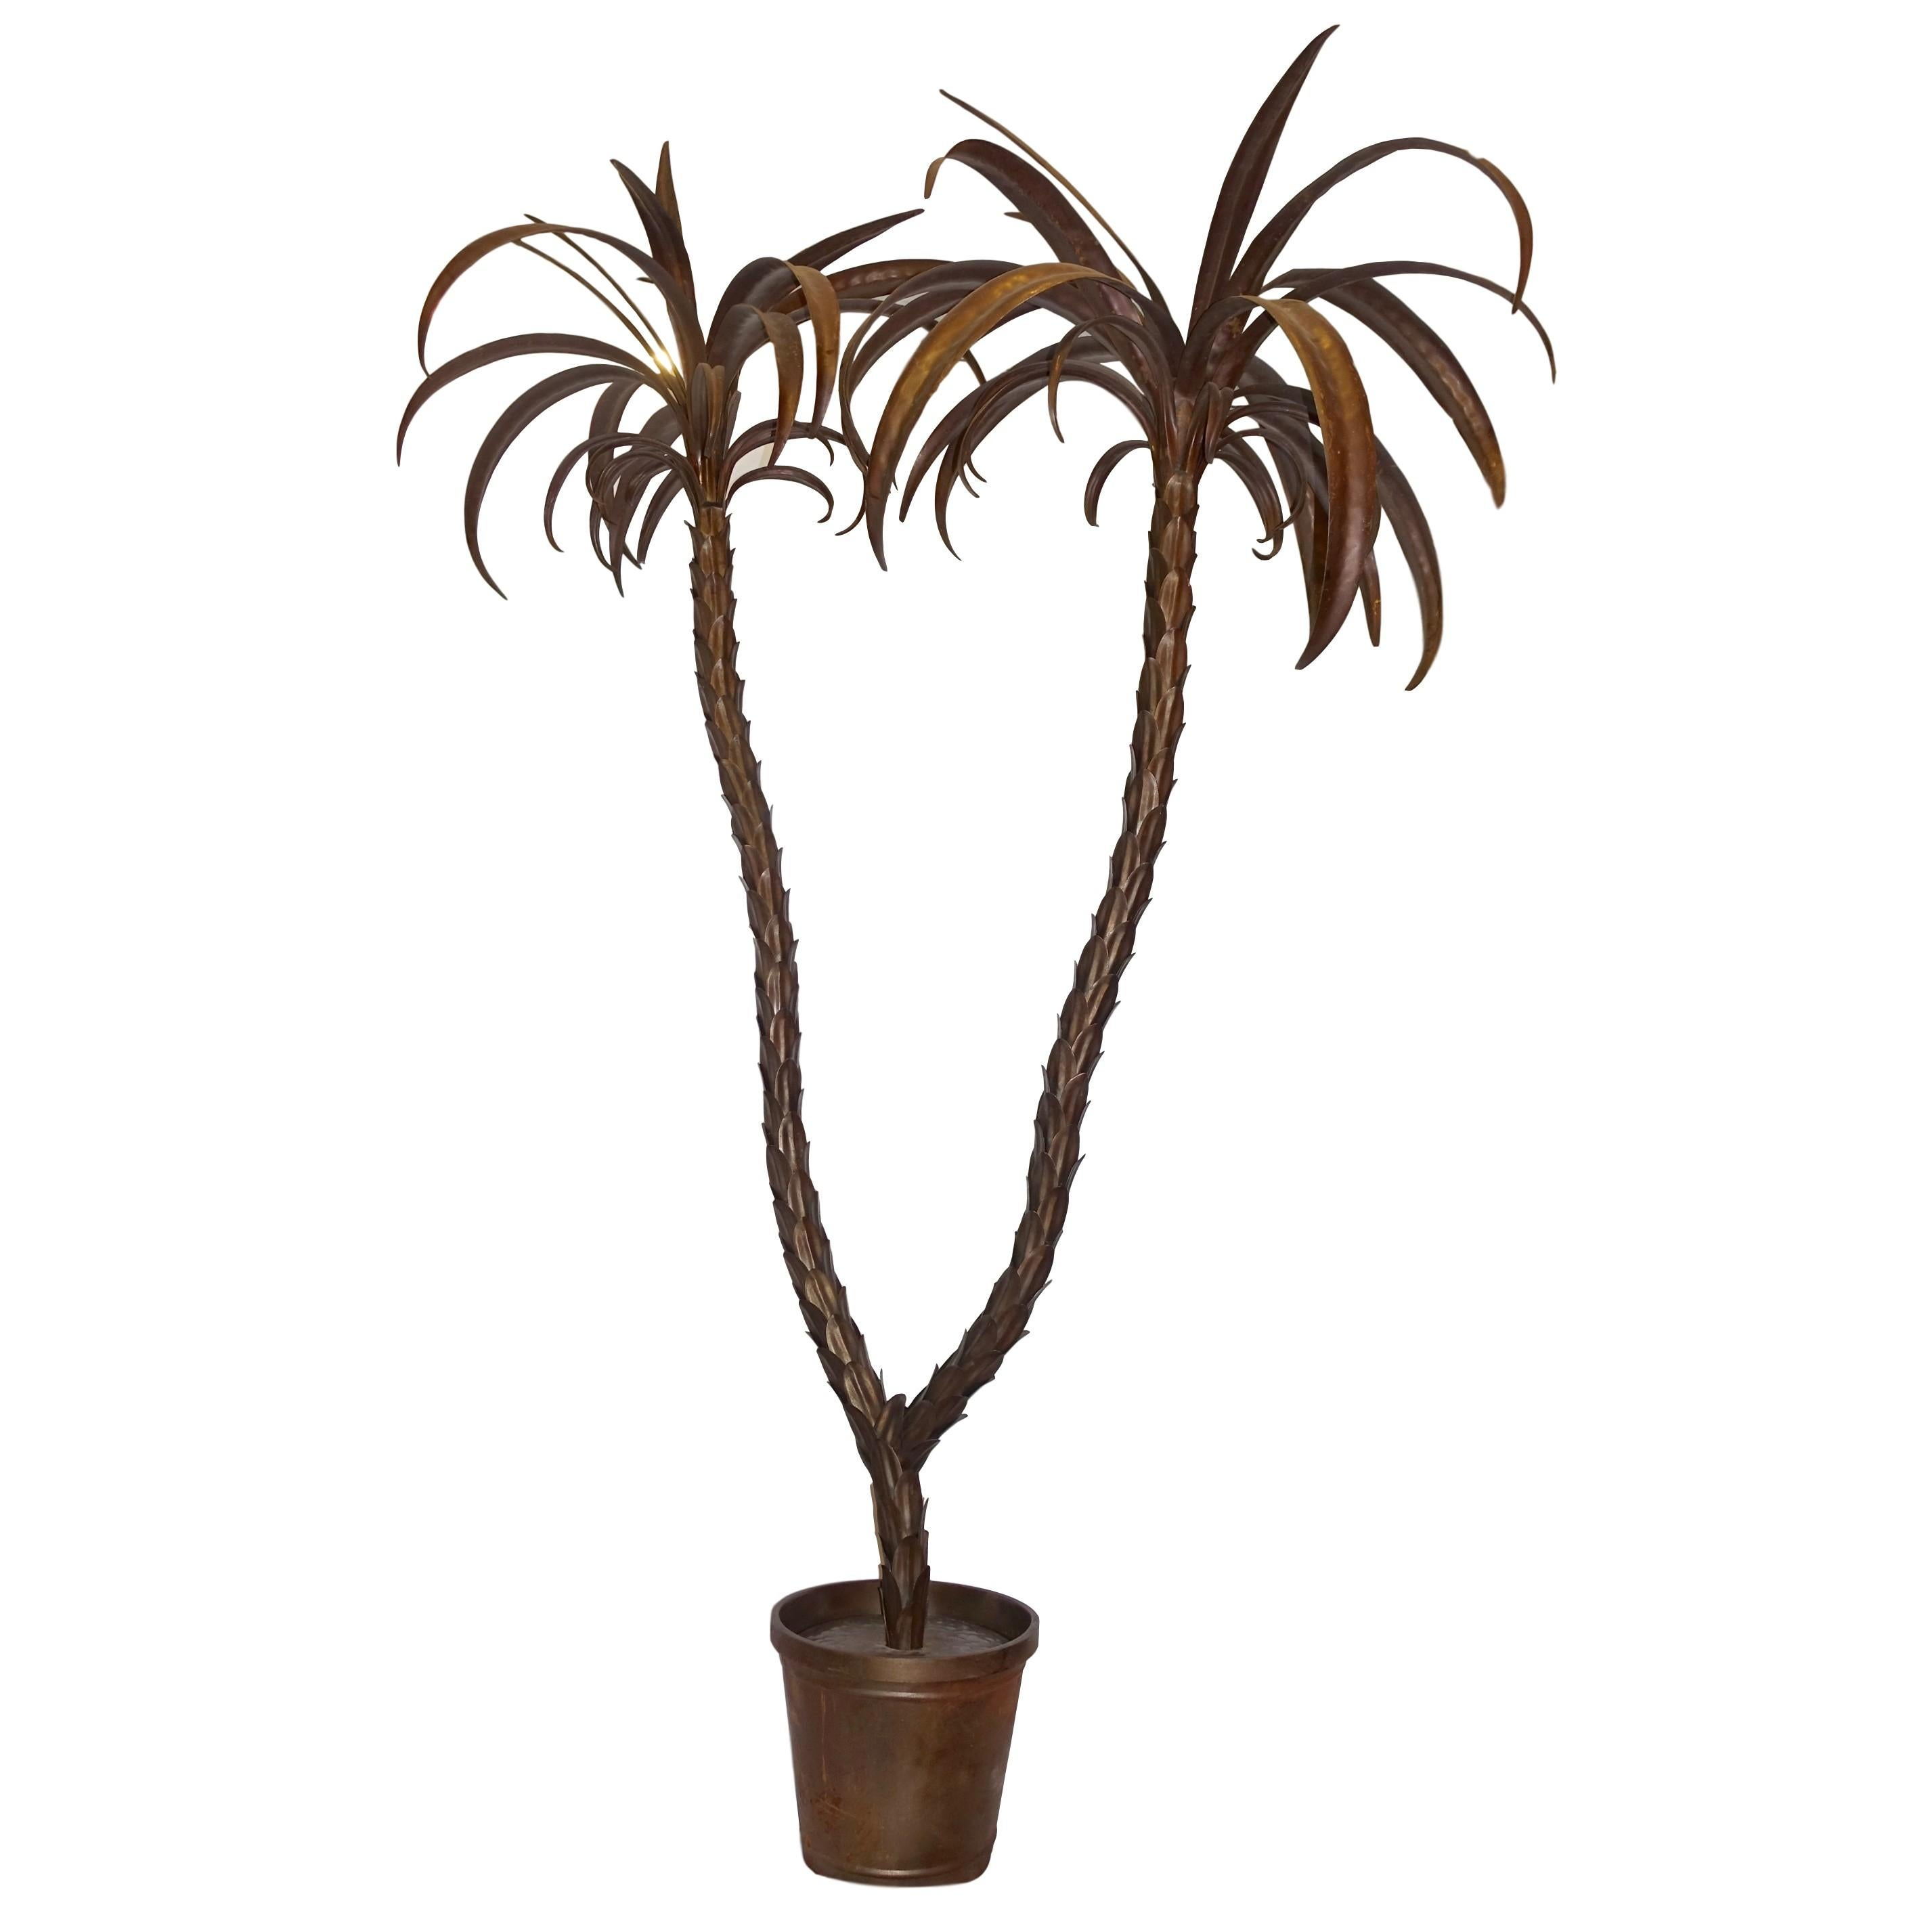 Hammered Metal Life-Size Palm Tree